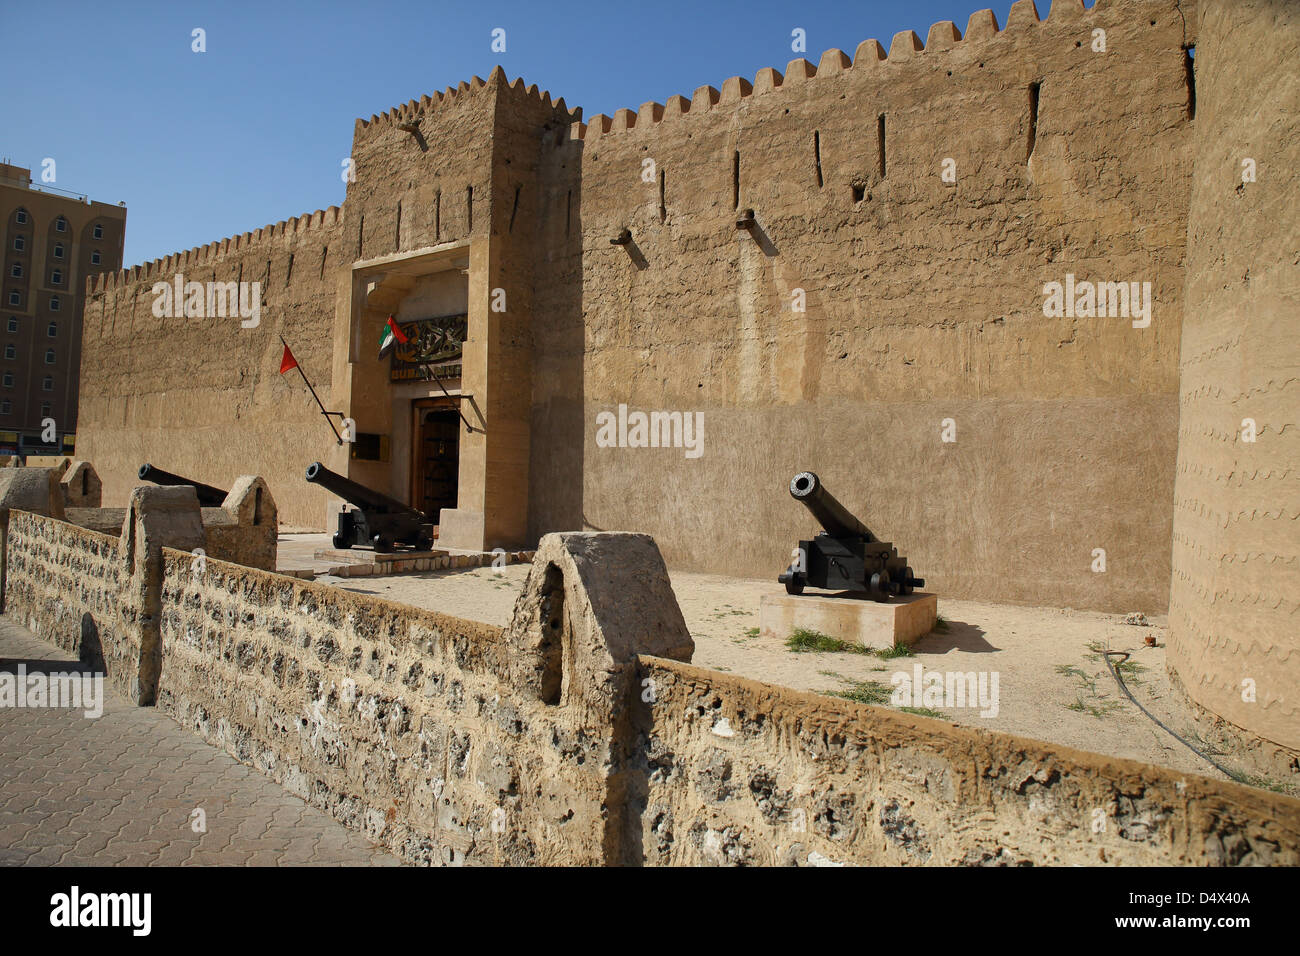 Exterior of the Dubai Museum, Dubai, United Arab Emirates - Stock Image